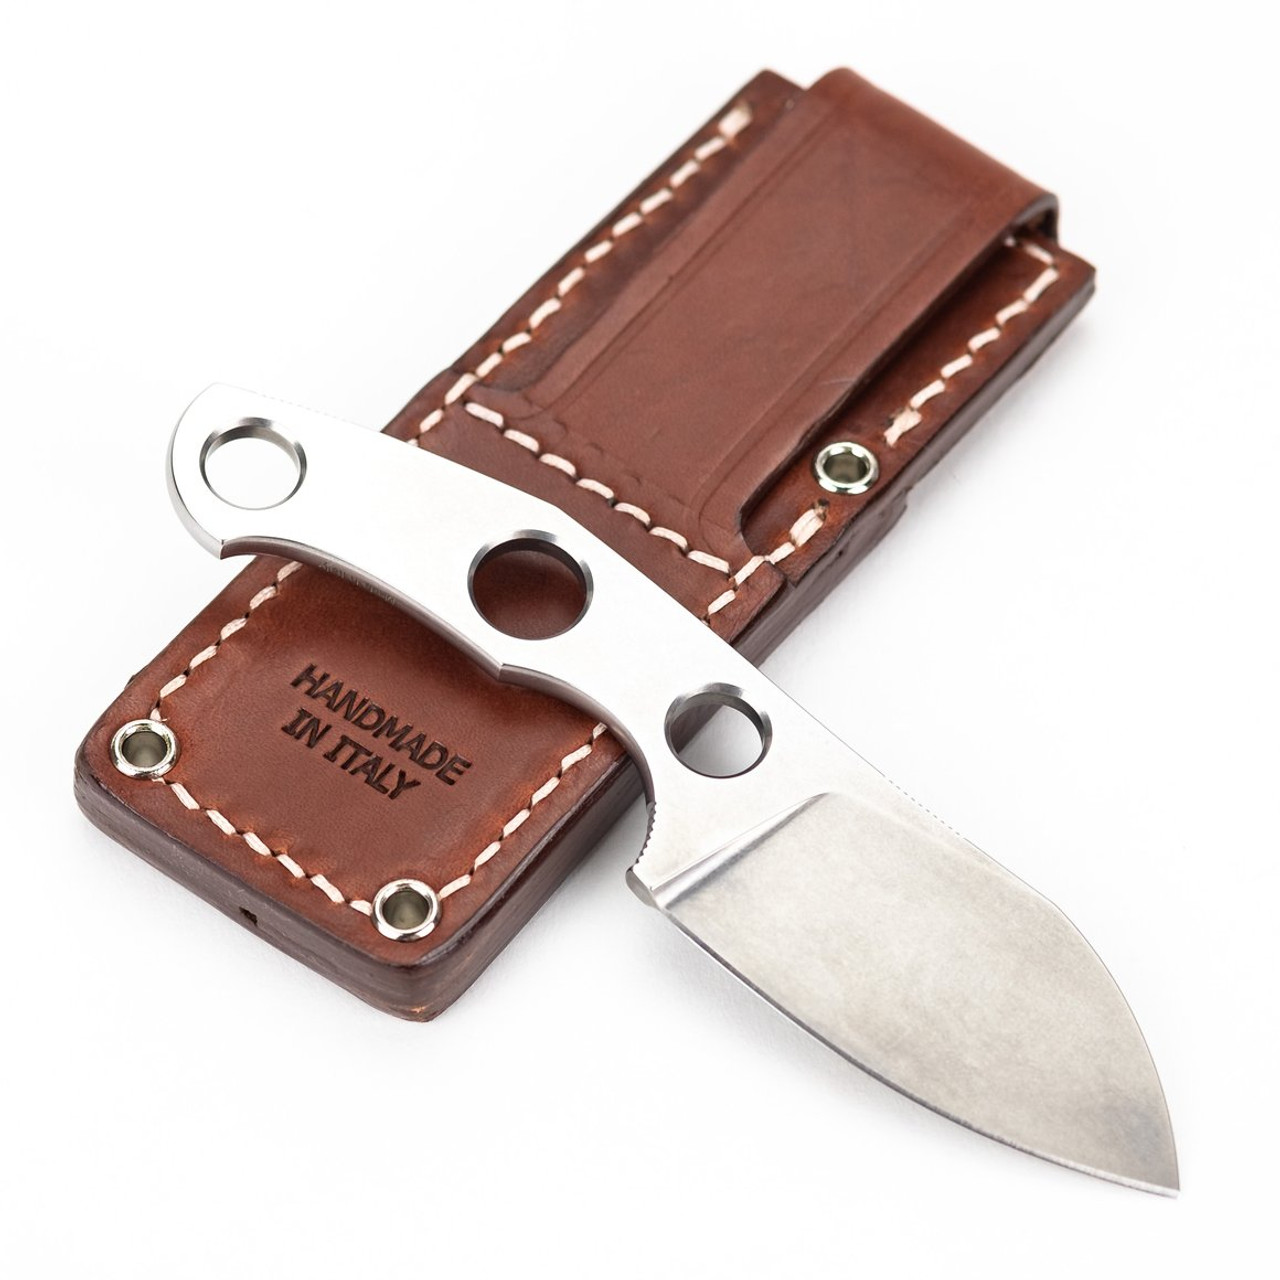 Giant Mouse GMF1-P Fixed Blade N690